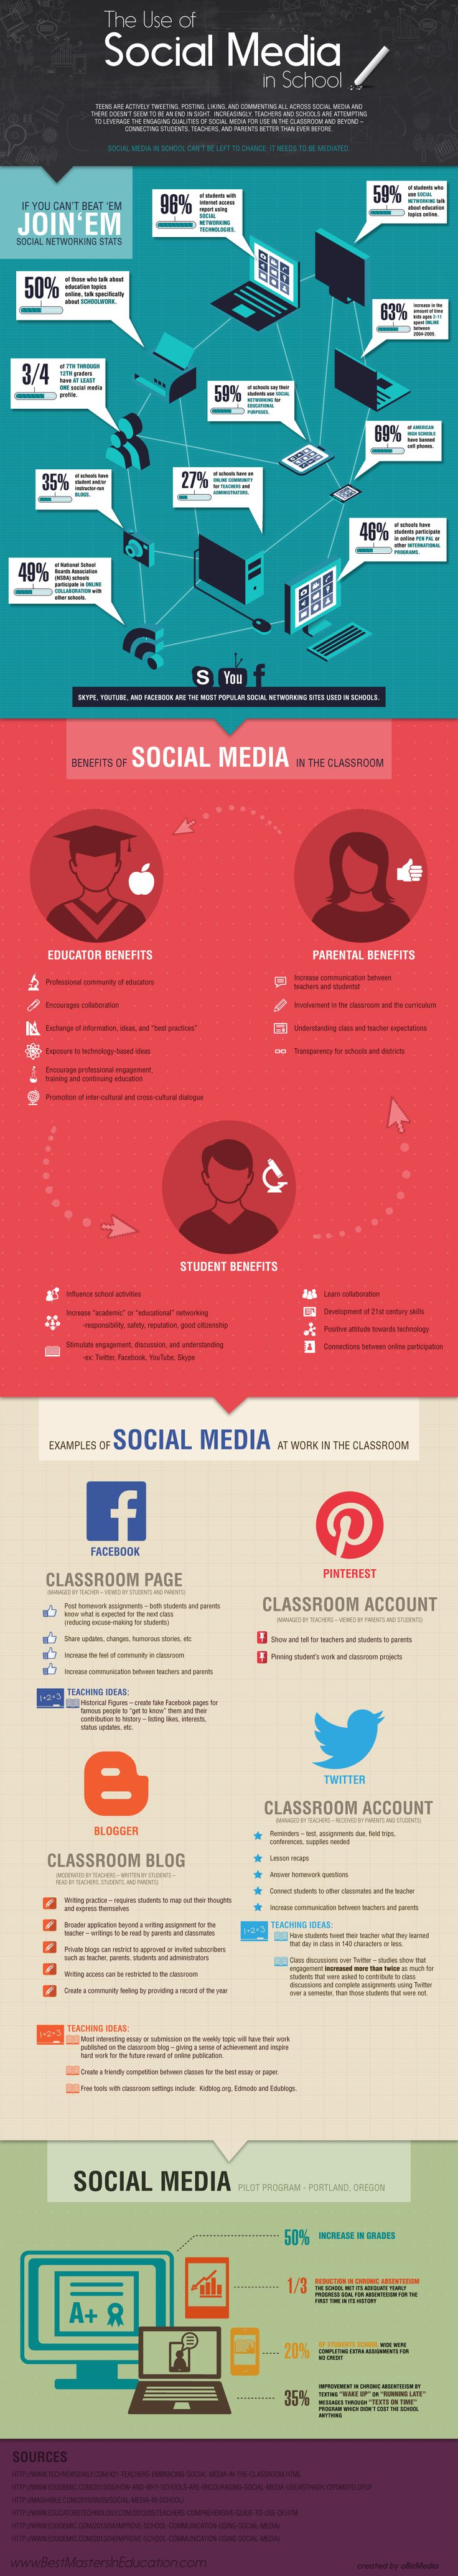 Social Media 101: Is There a Place For Social Media in Classrooms? ~ Digital Information World